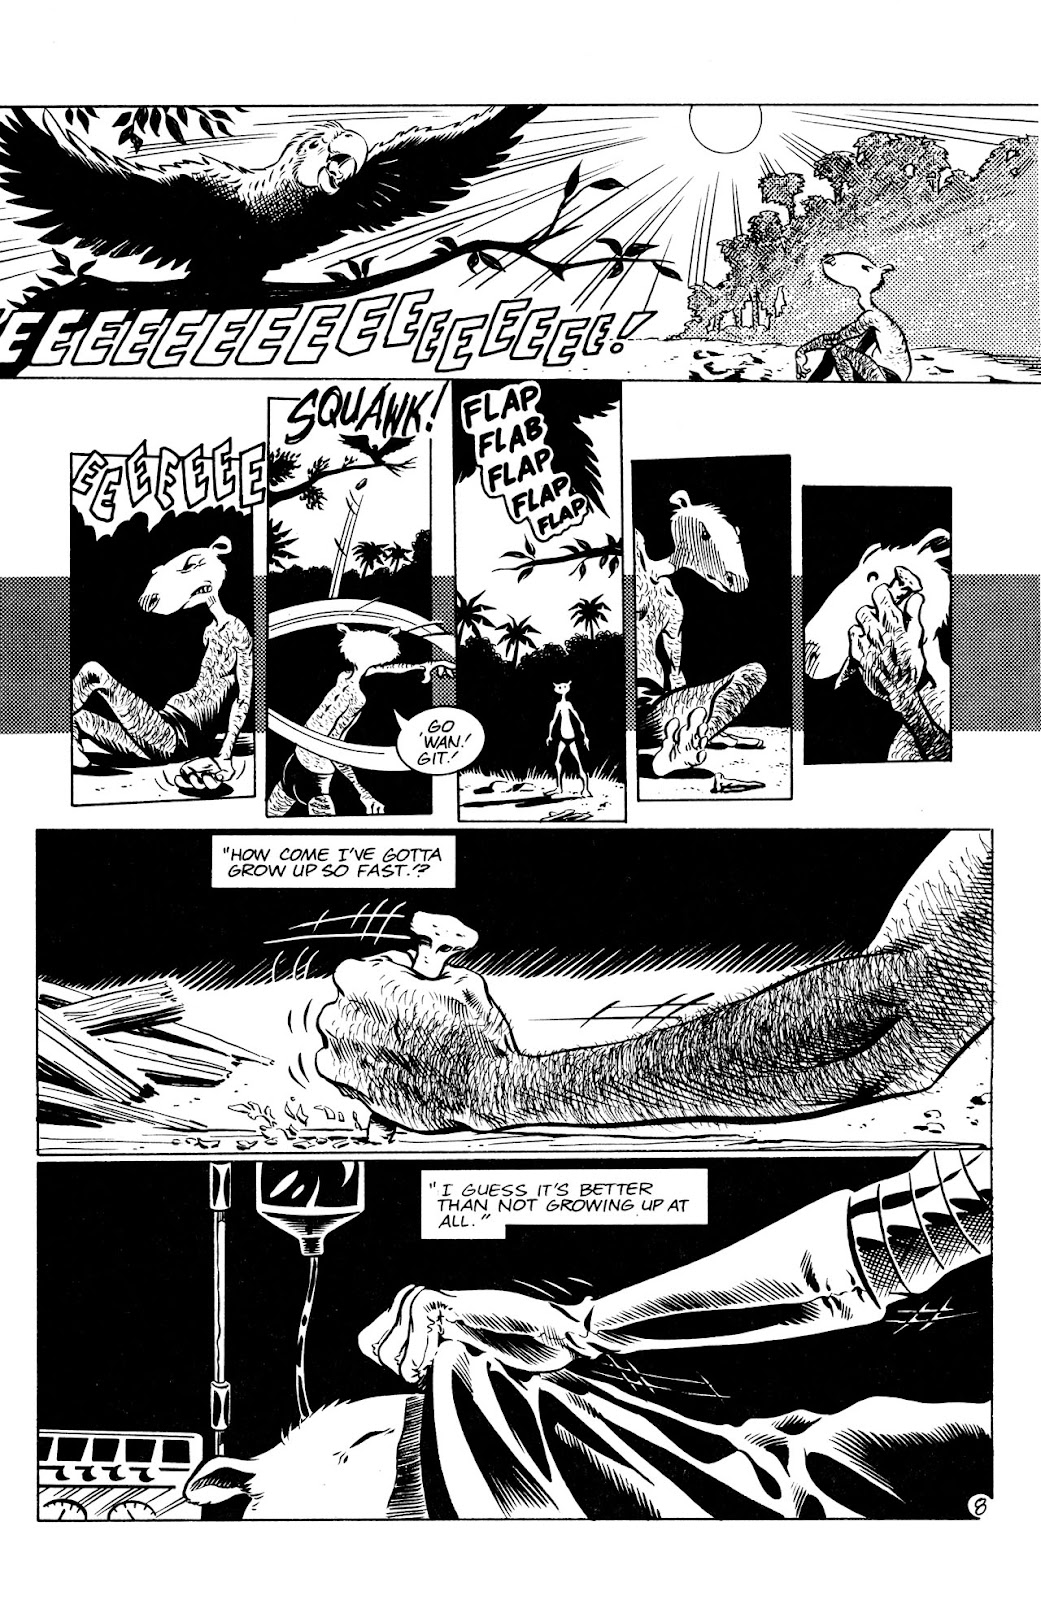 Adolescent Radioactive Black Belt Hamsters (1986) issue 8 - Page 9